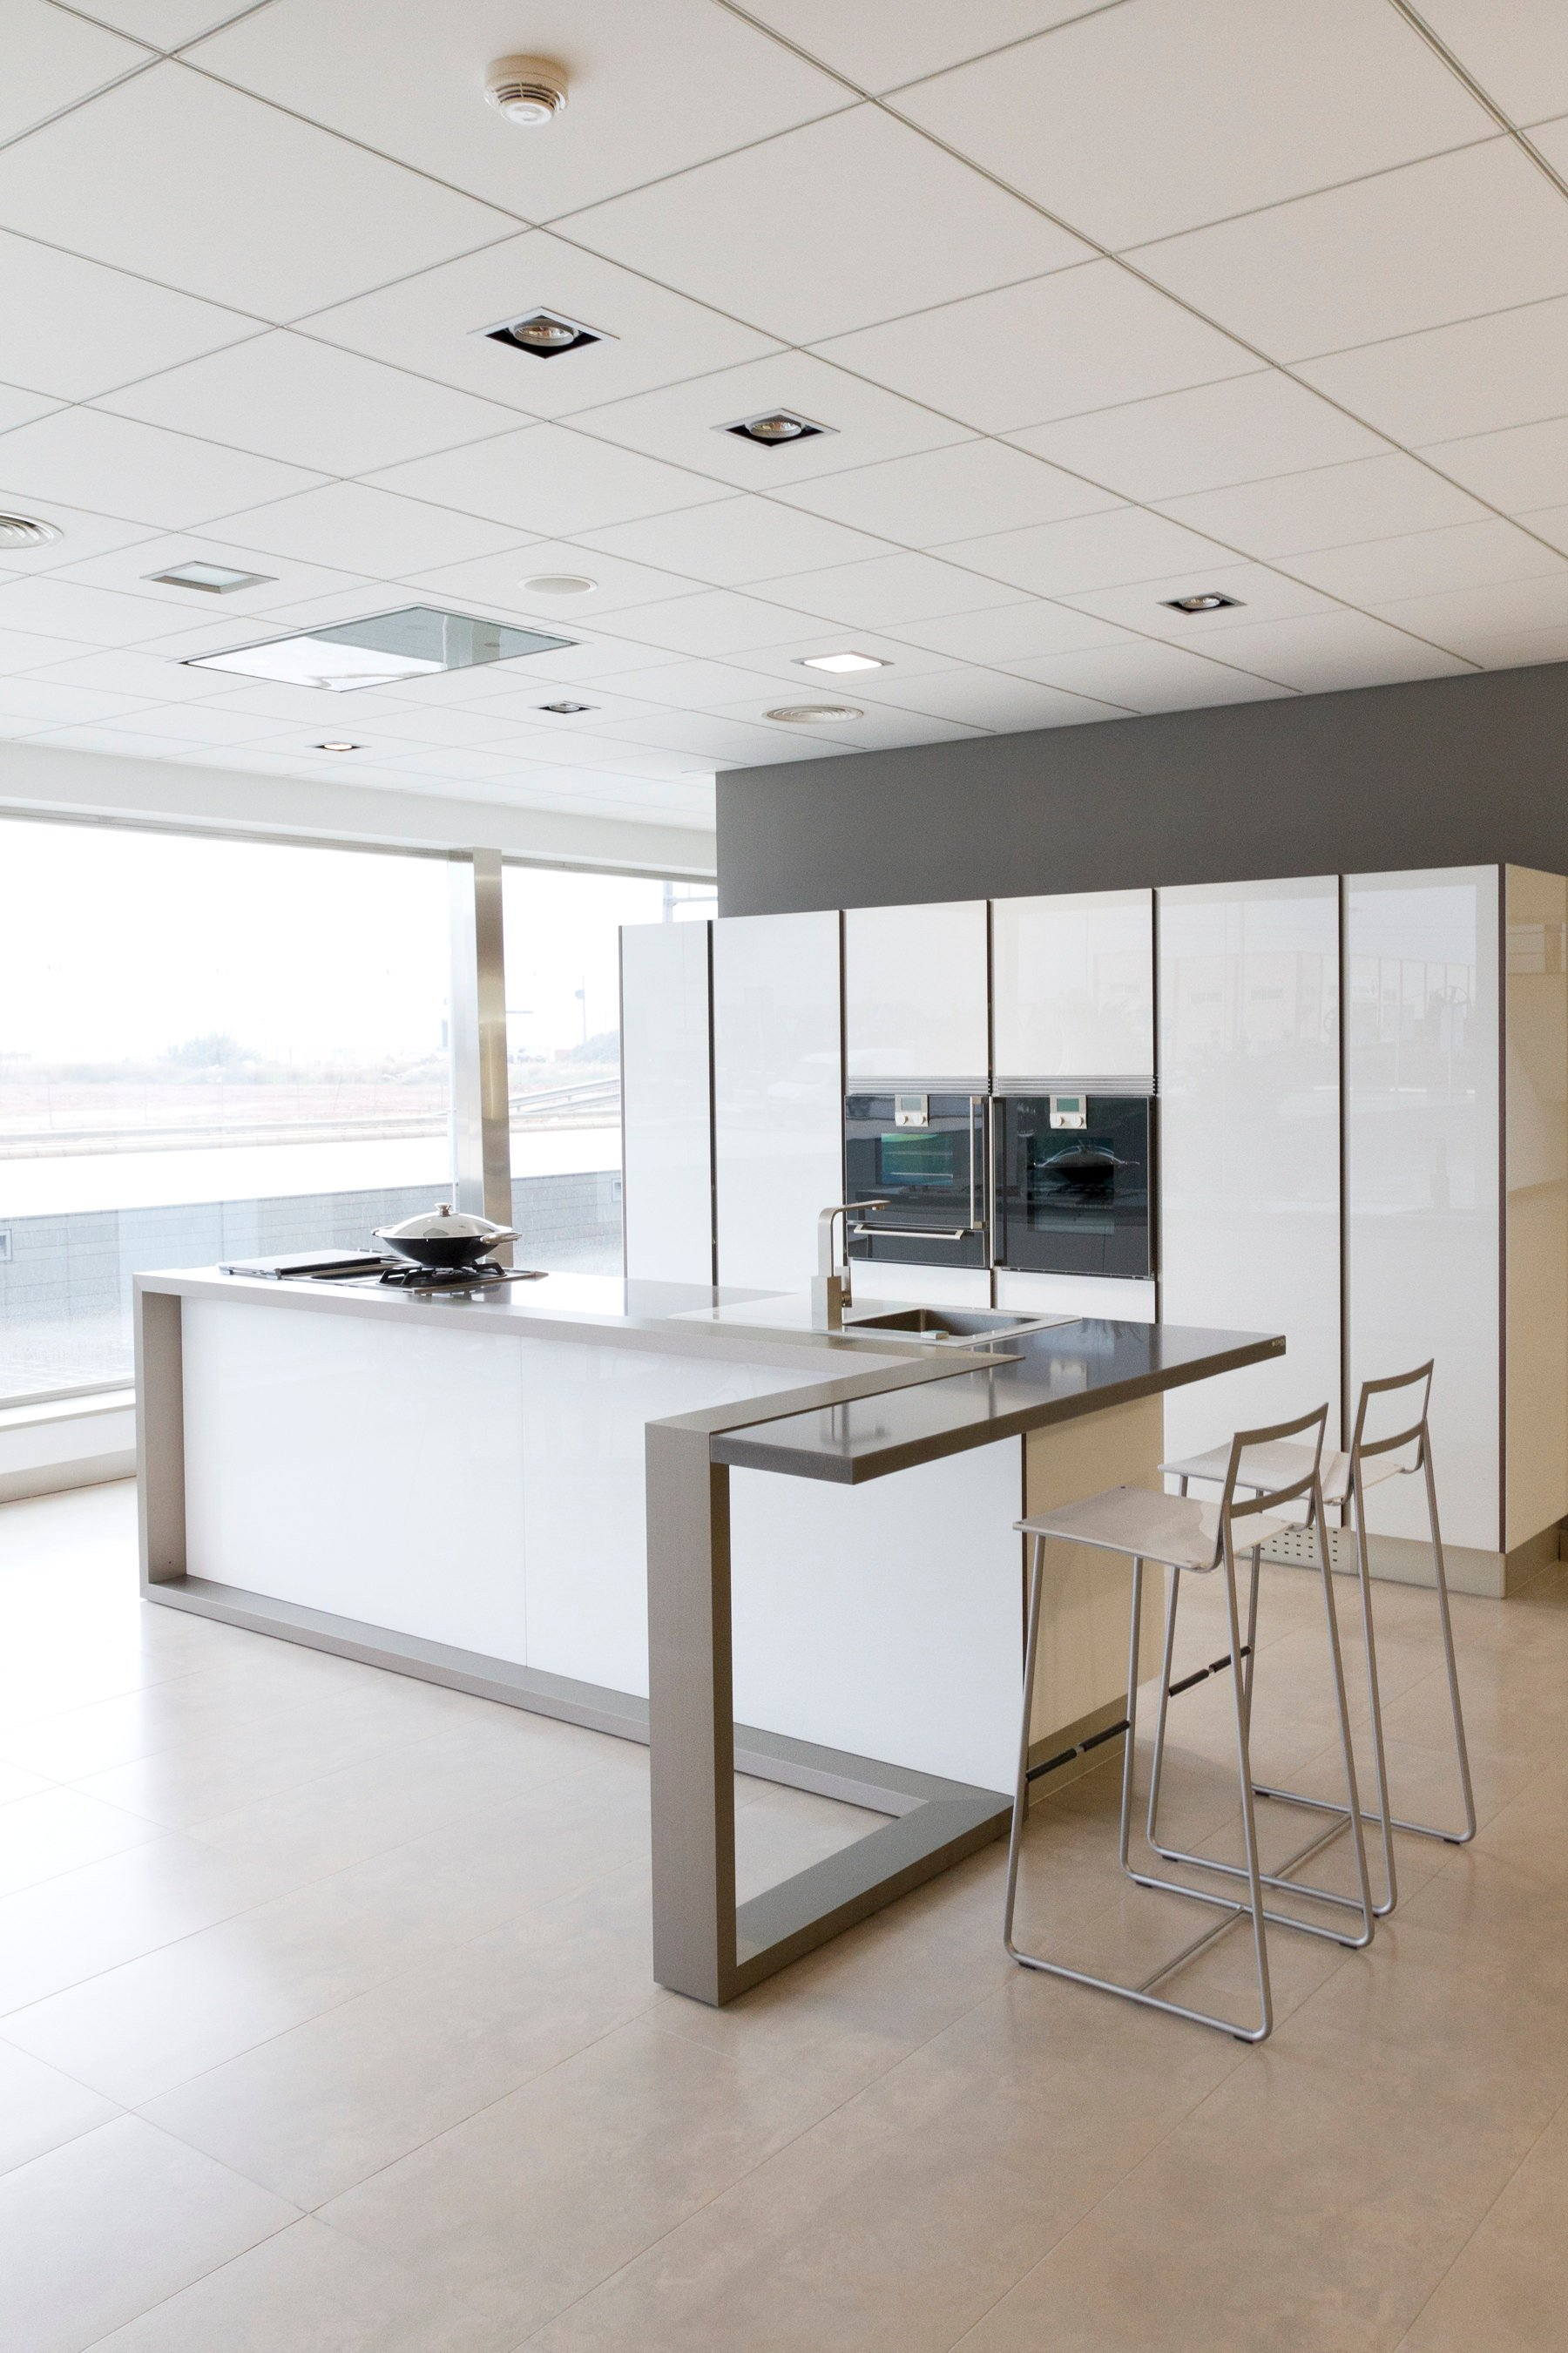 Here's a compact white kitchen with l-shaped small island in a modern style.